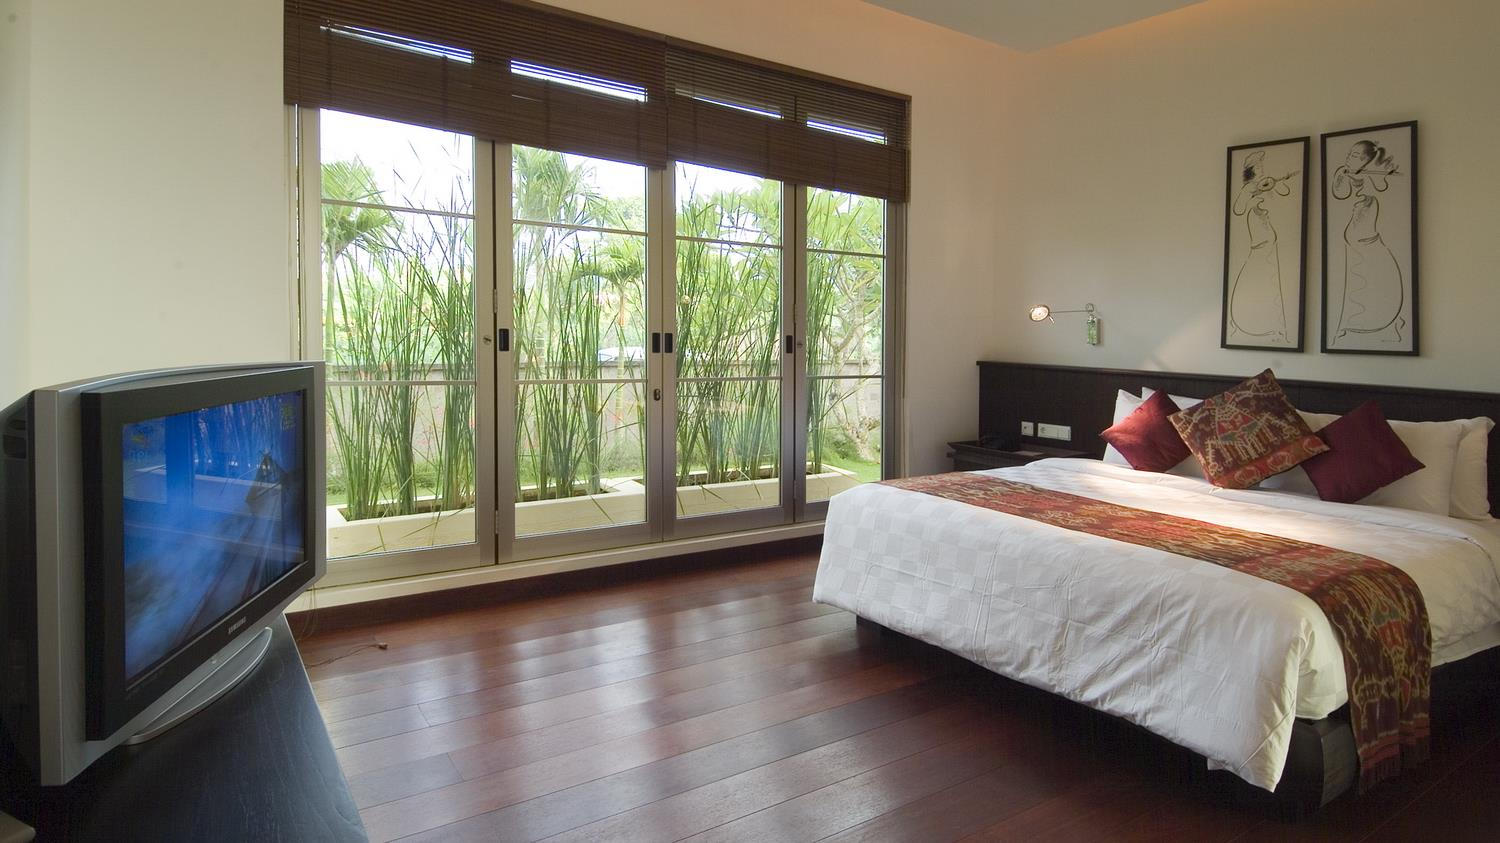 Spacious Bedroom with TV - Sanur Residence - Sanur, Bali